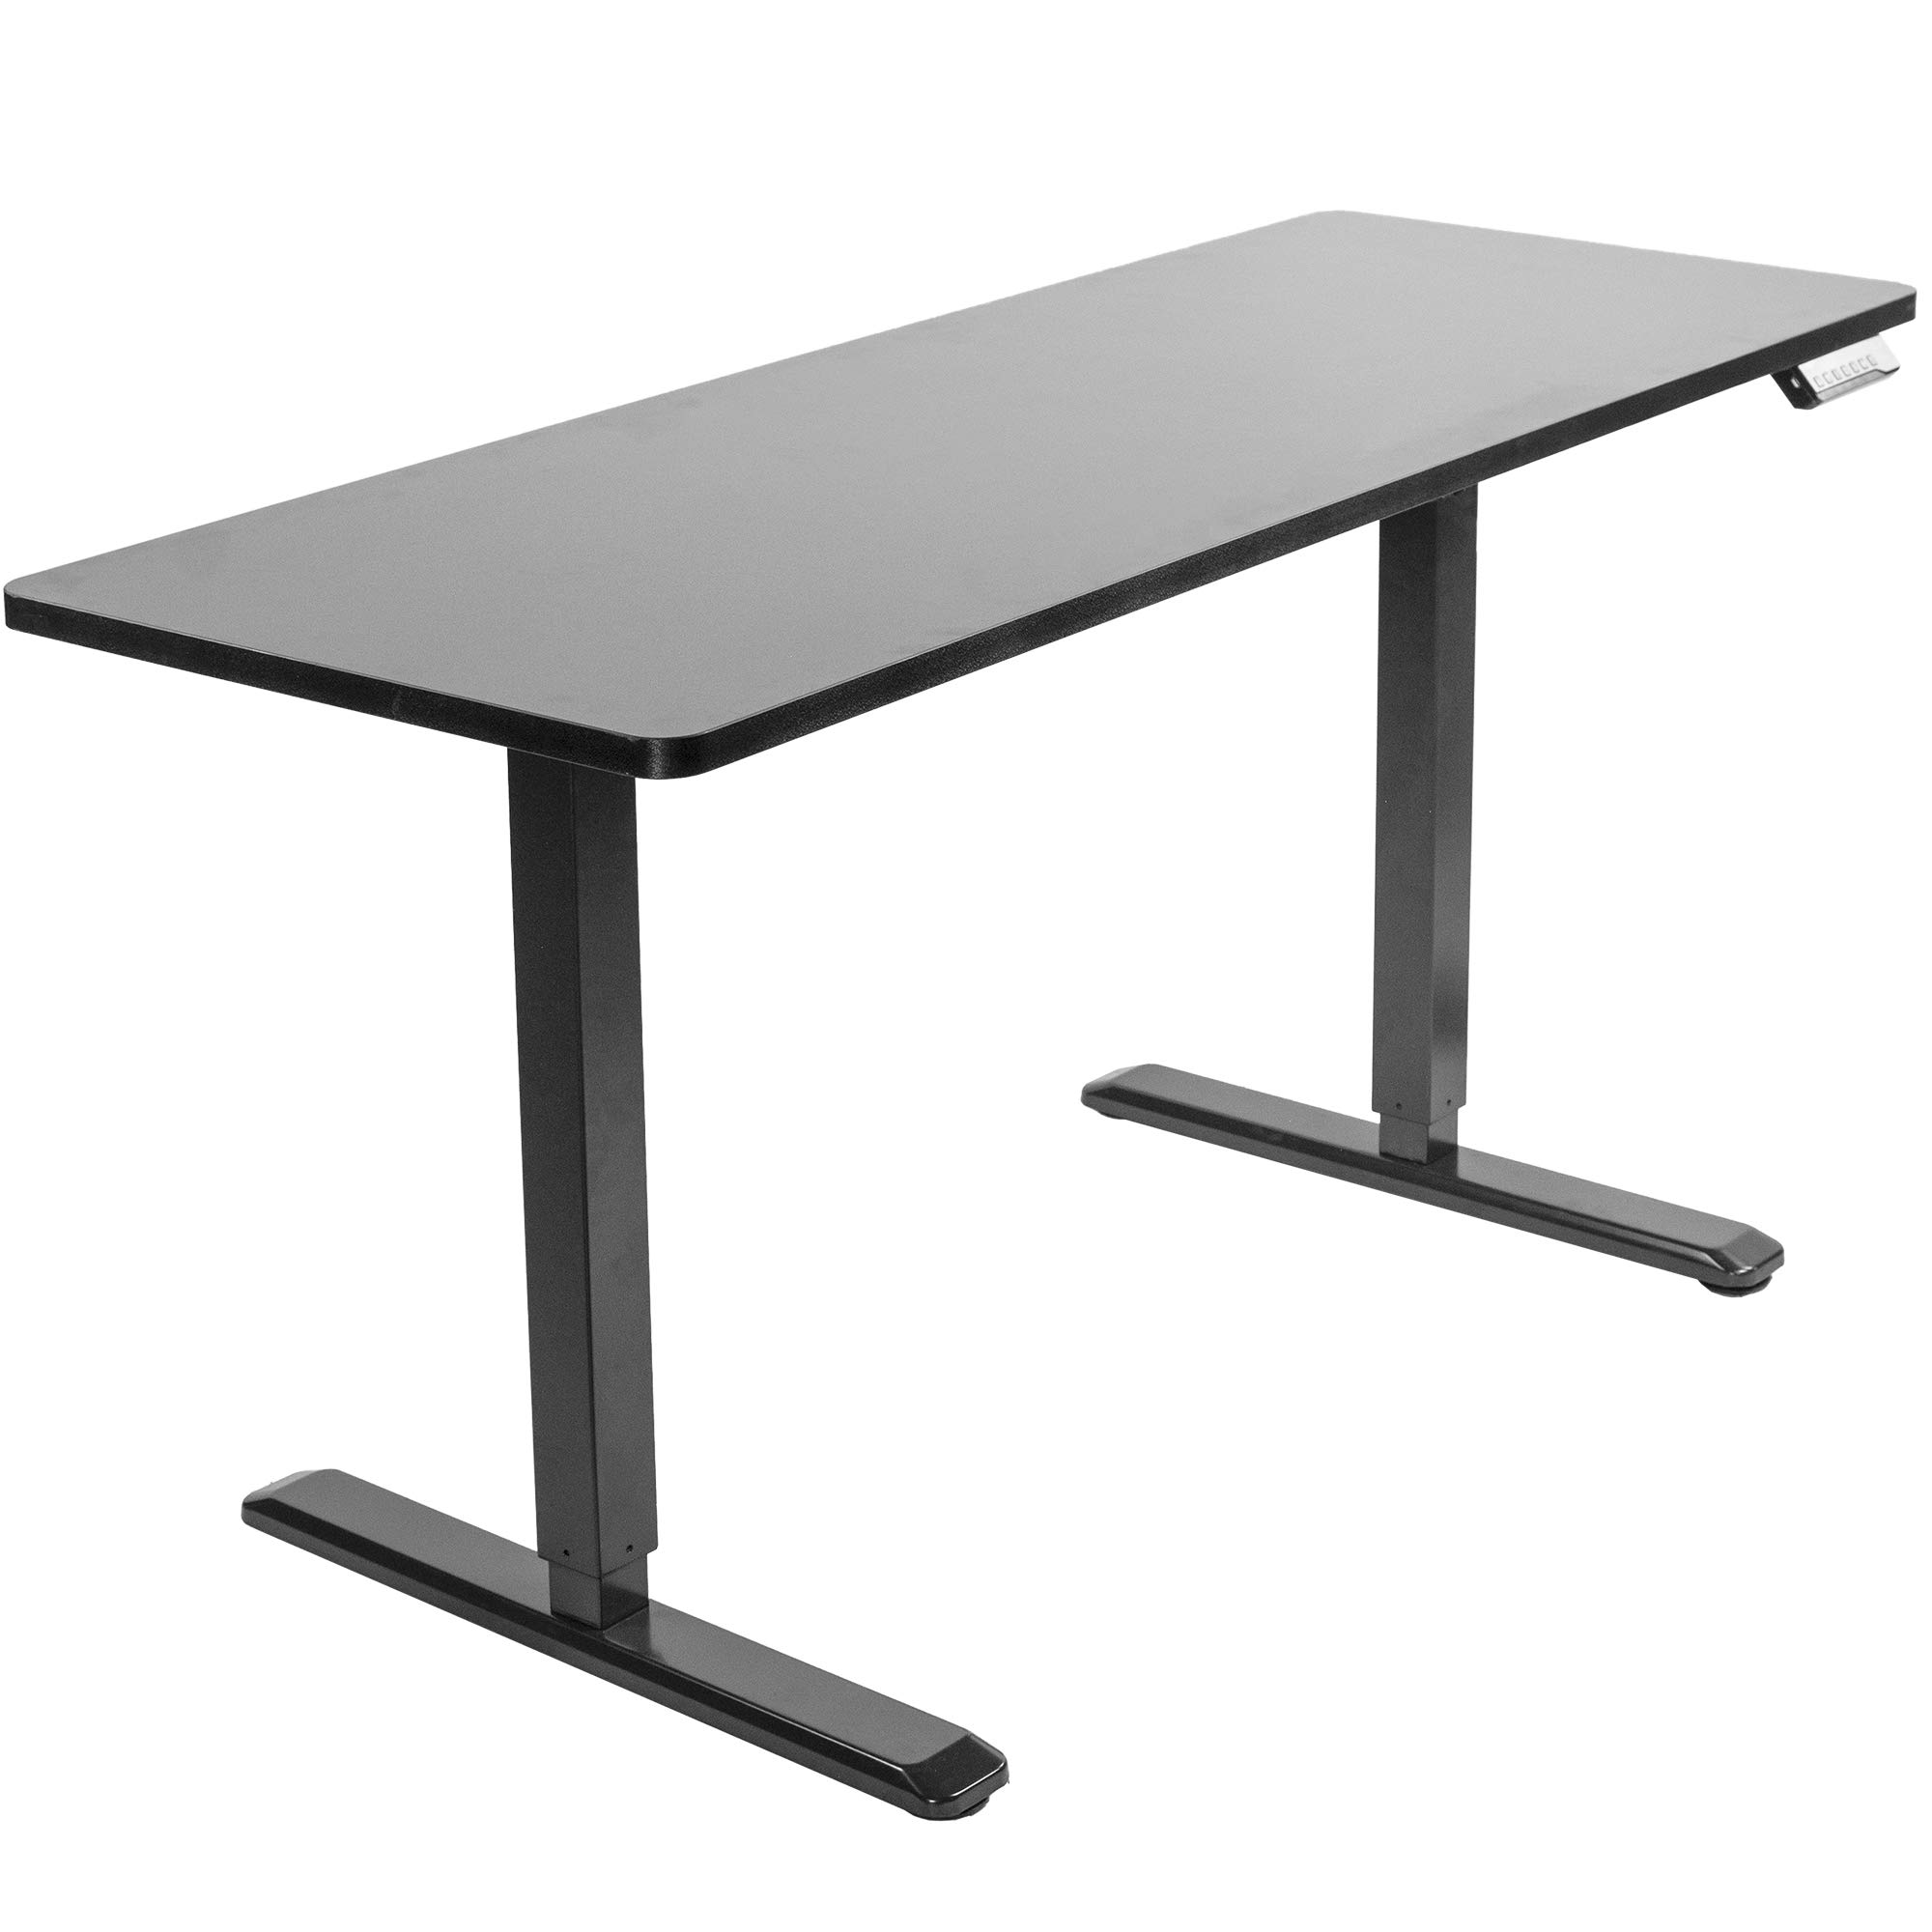 VIVO Electric 60 x 24 inch Stand Up Desk | Black Table Top, Black Frame, Height Adjustable Standing Workstation with Memory Preset Controller (DESK-KIT-1B6B) by VIVO